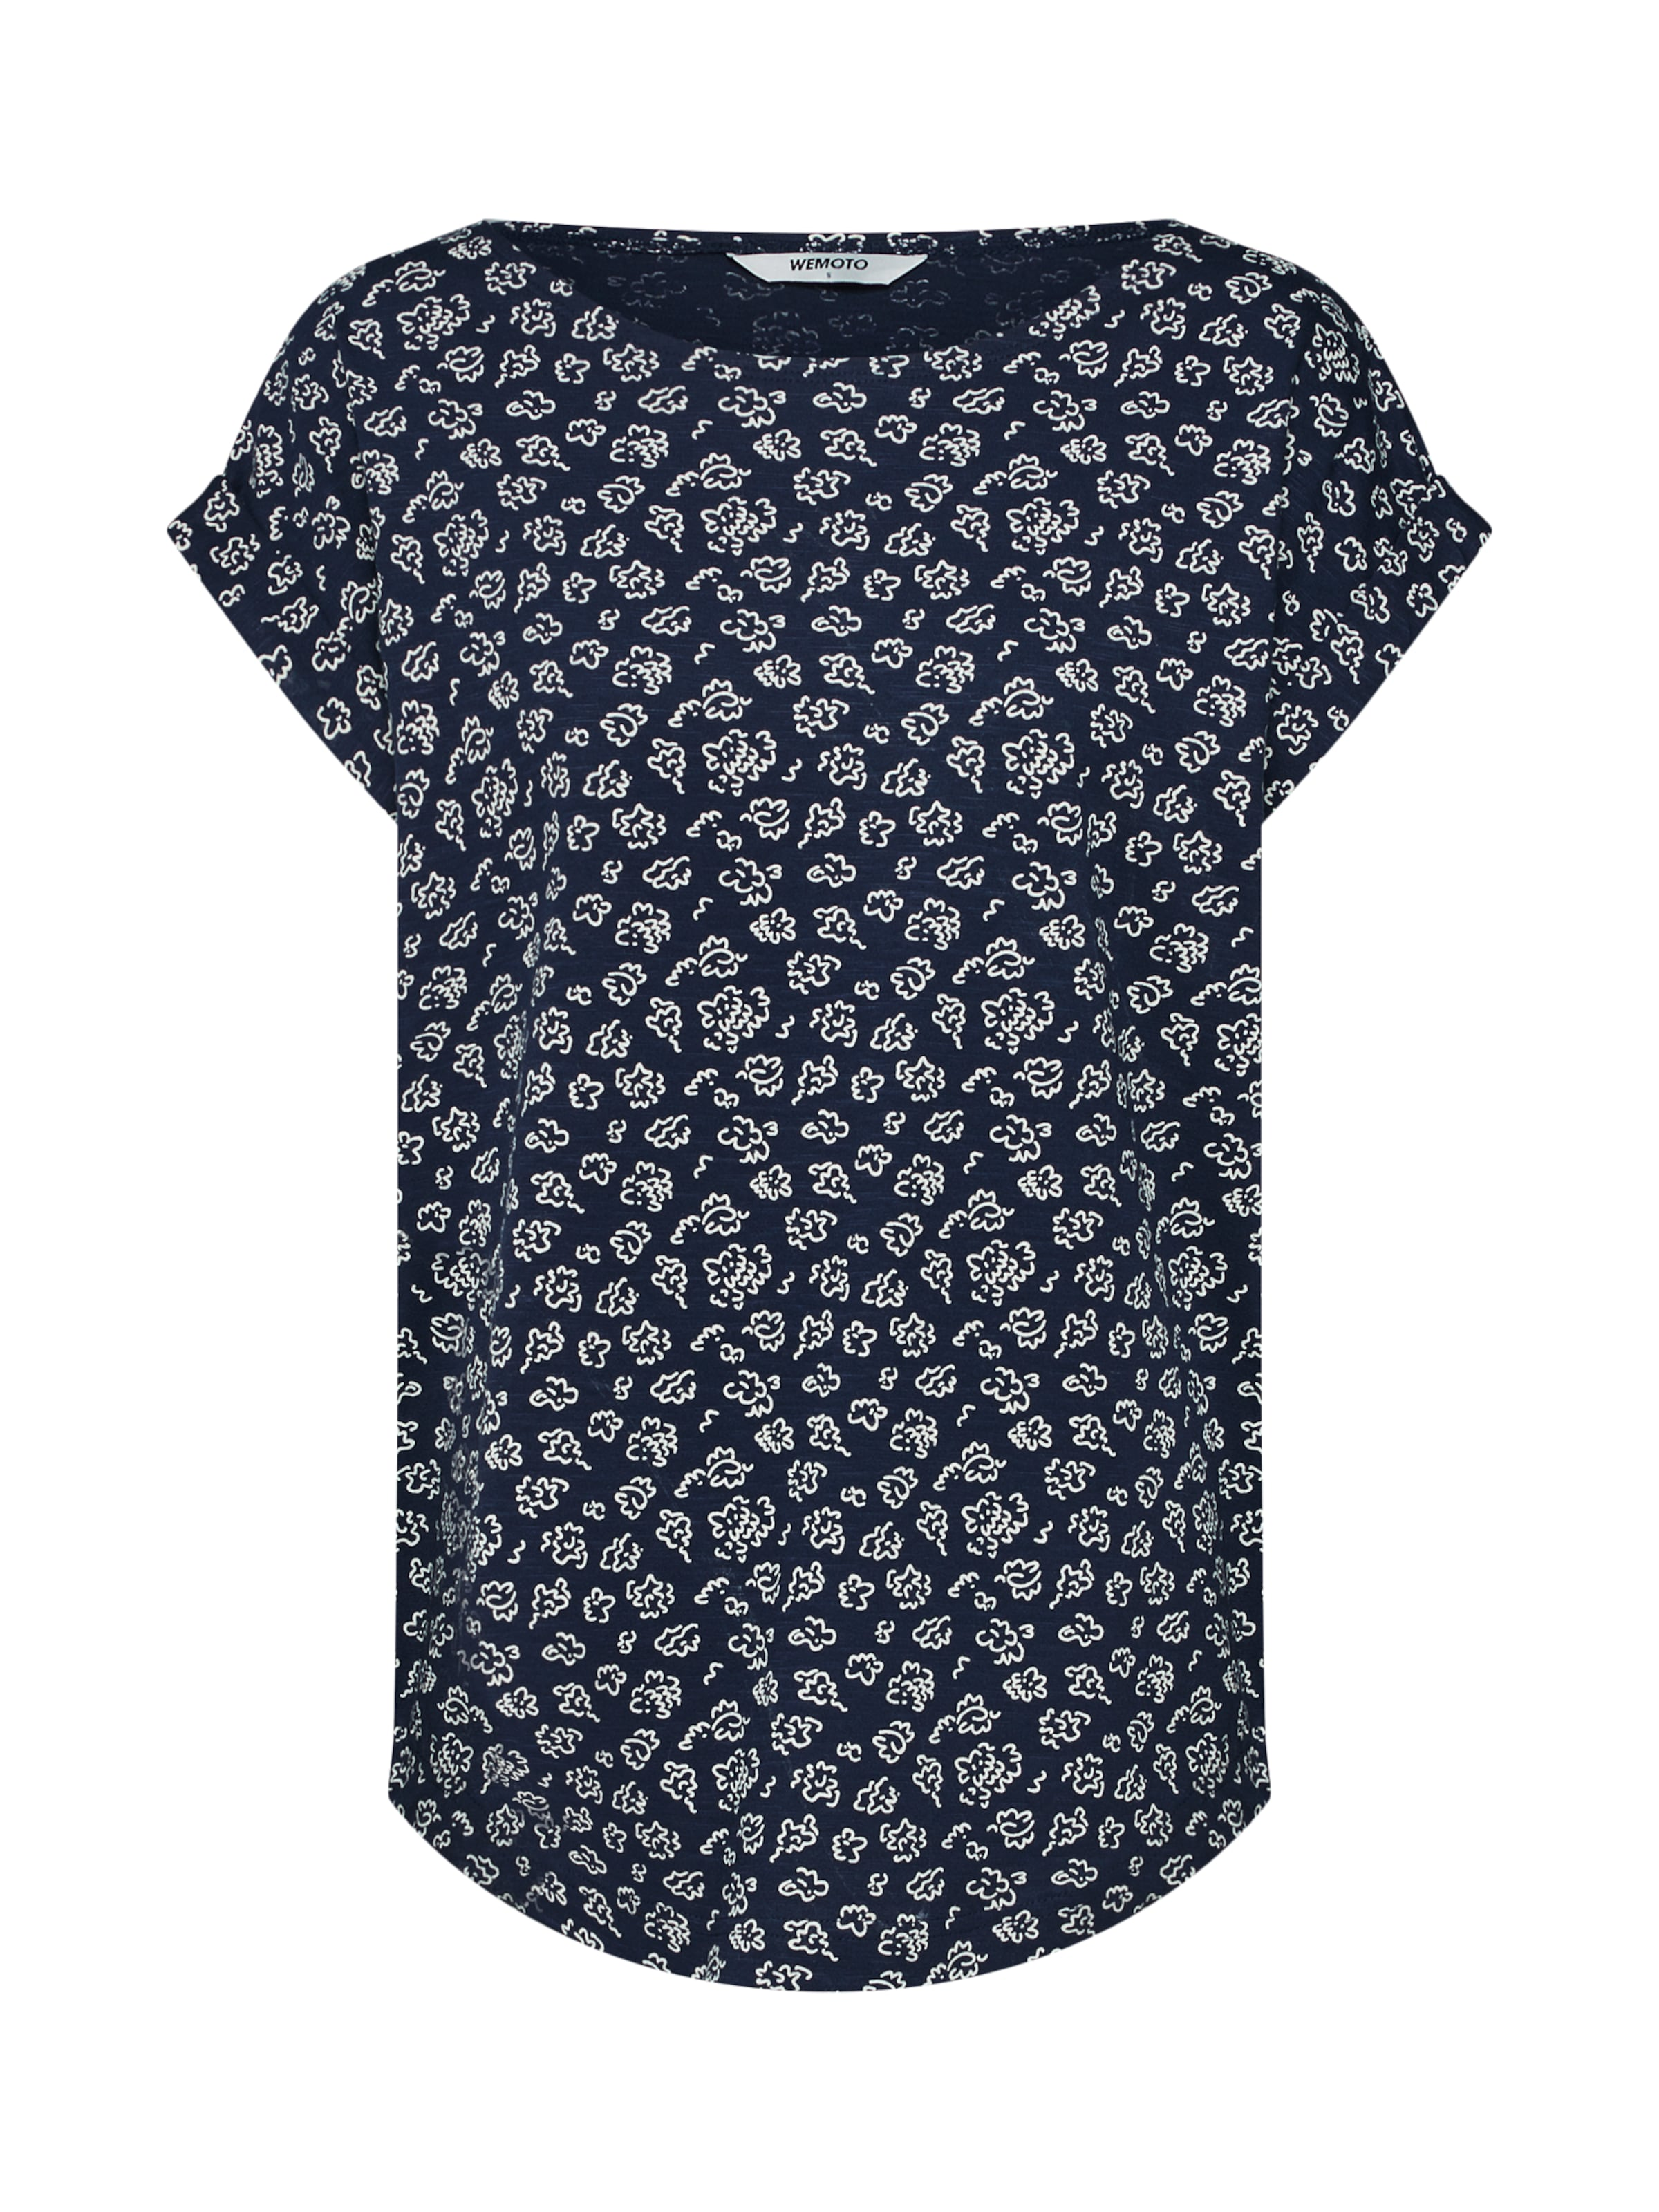 T Wemoto En MarineBlanc shirt 'holly' Bleu 3jLq5A4R